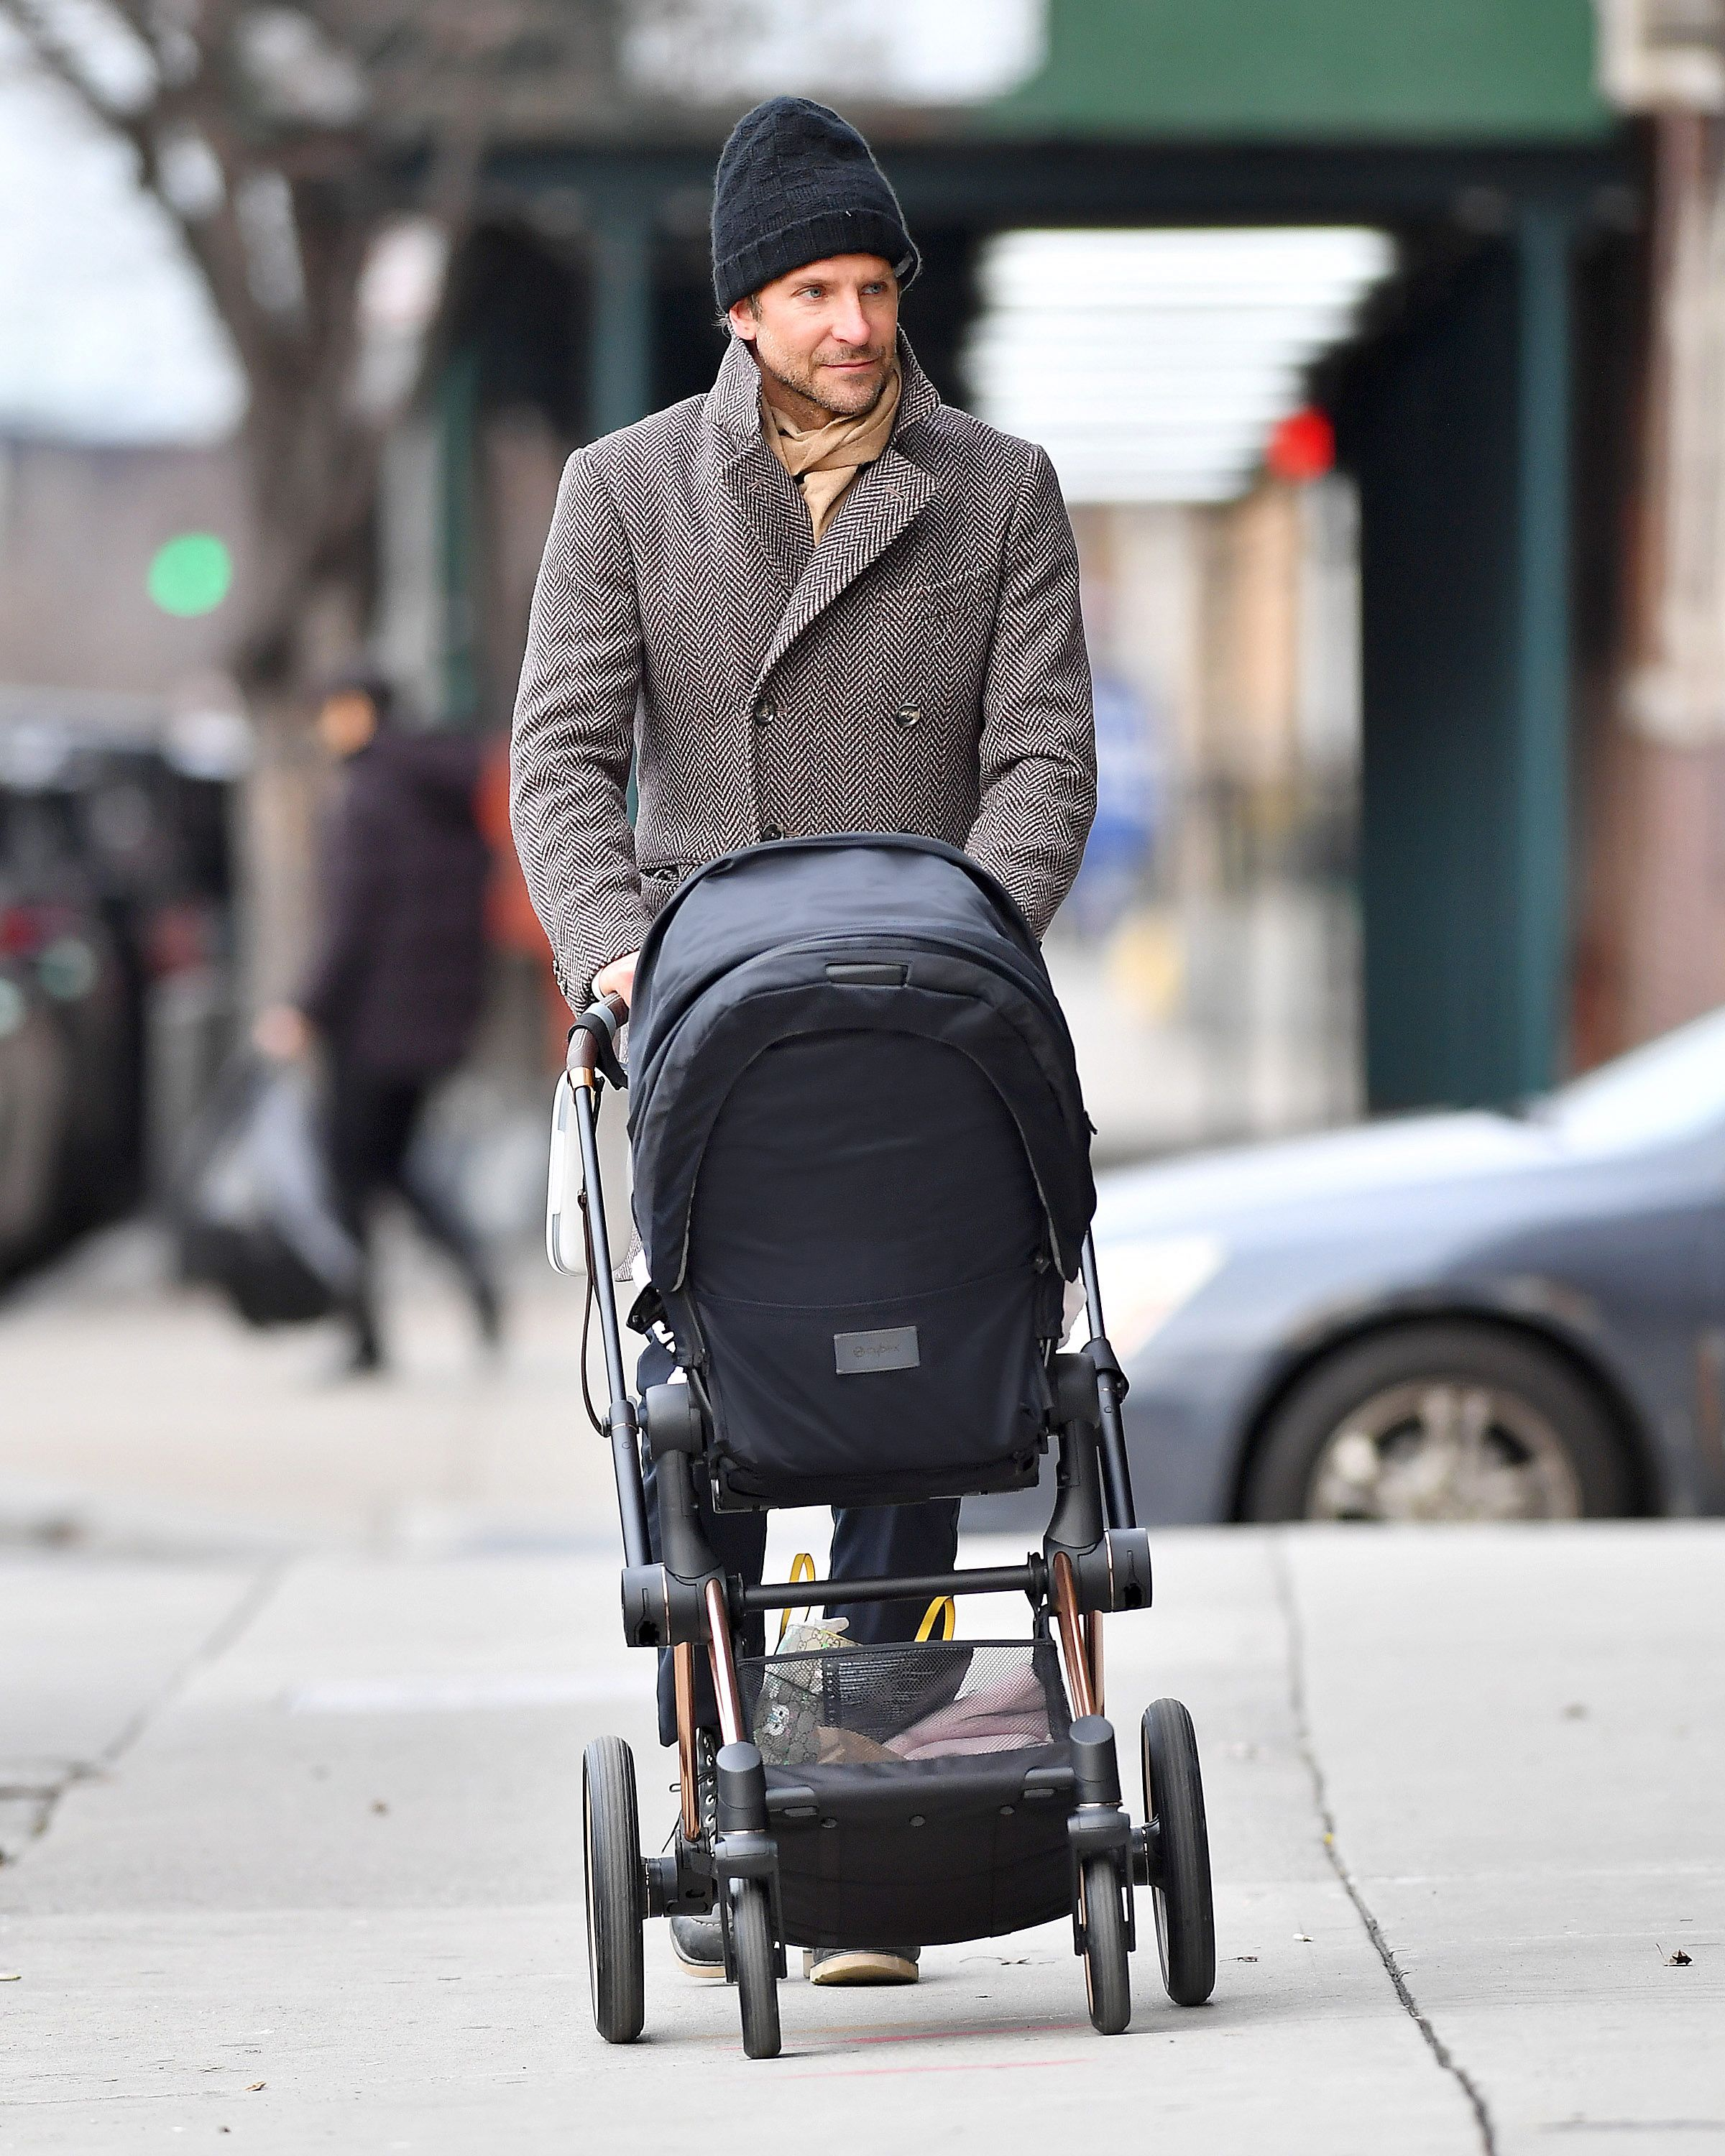 Actor Bradley Cooper seen with the The New CYBEX Priam